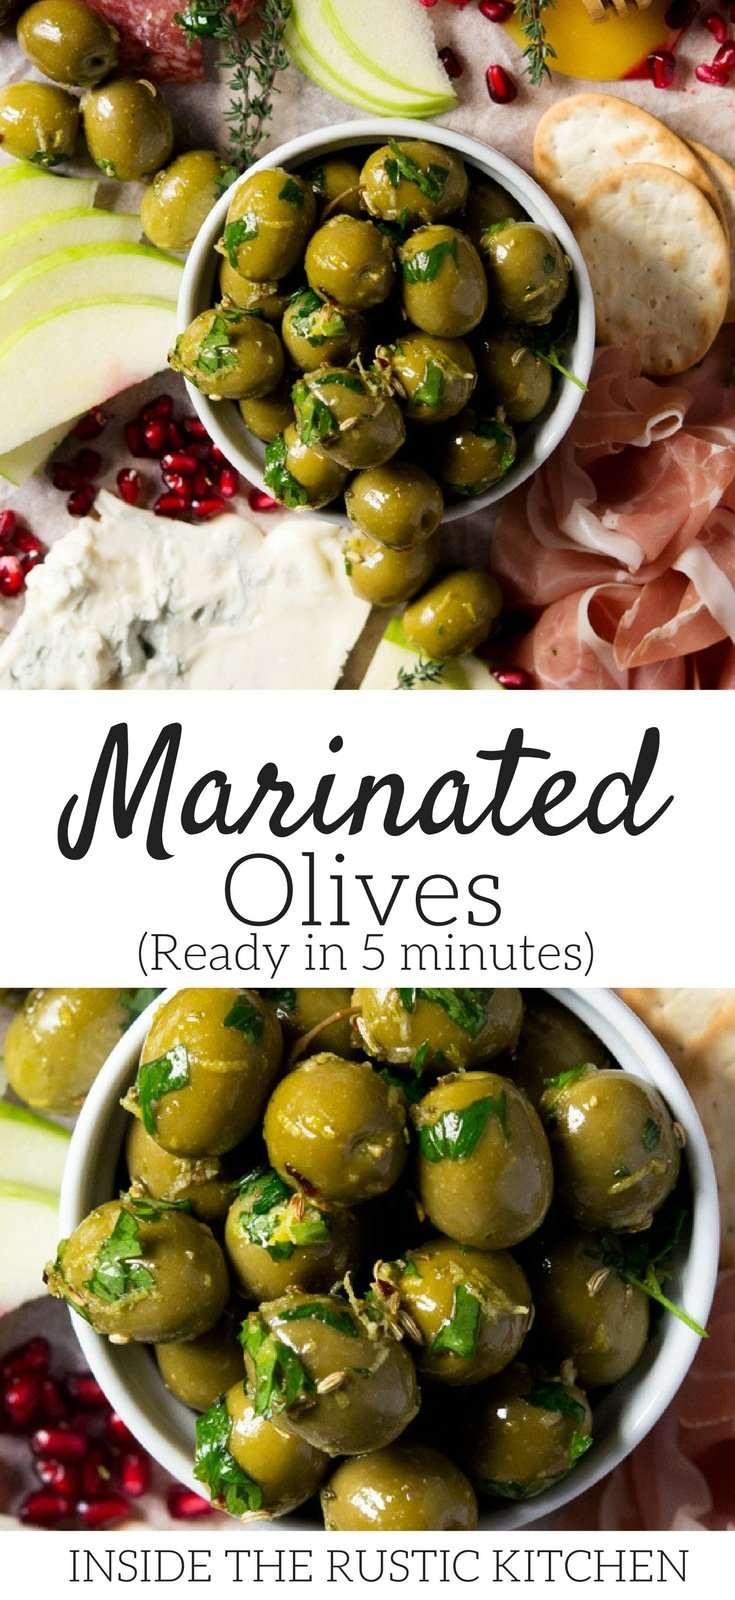 Easy marinated olives made with herbs, spices and lemon zest. These marinated, gourmet olives are so easy to make and are ready in 5 minutes. A perfect addition to an antipasto platter or as an appetizer with drinks. #easyappetizers #olives#Italianfood #Italianrecipes #appetizers